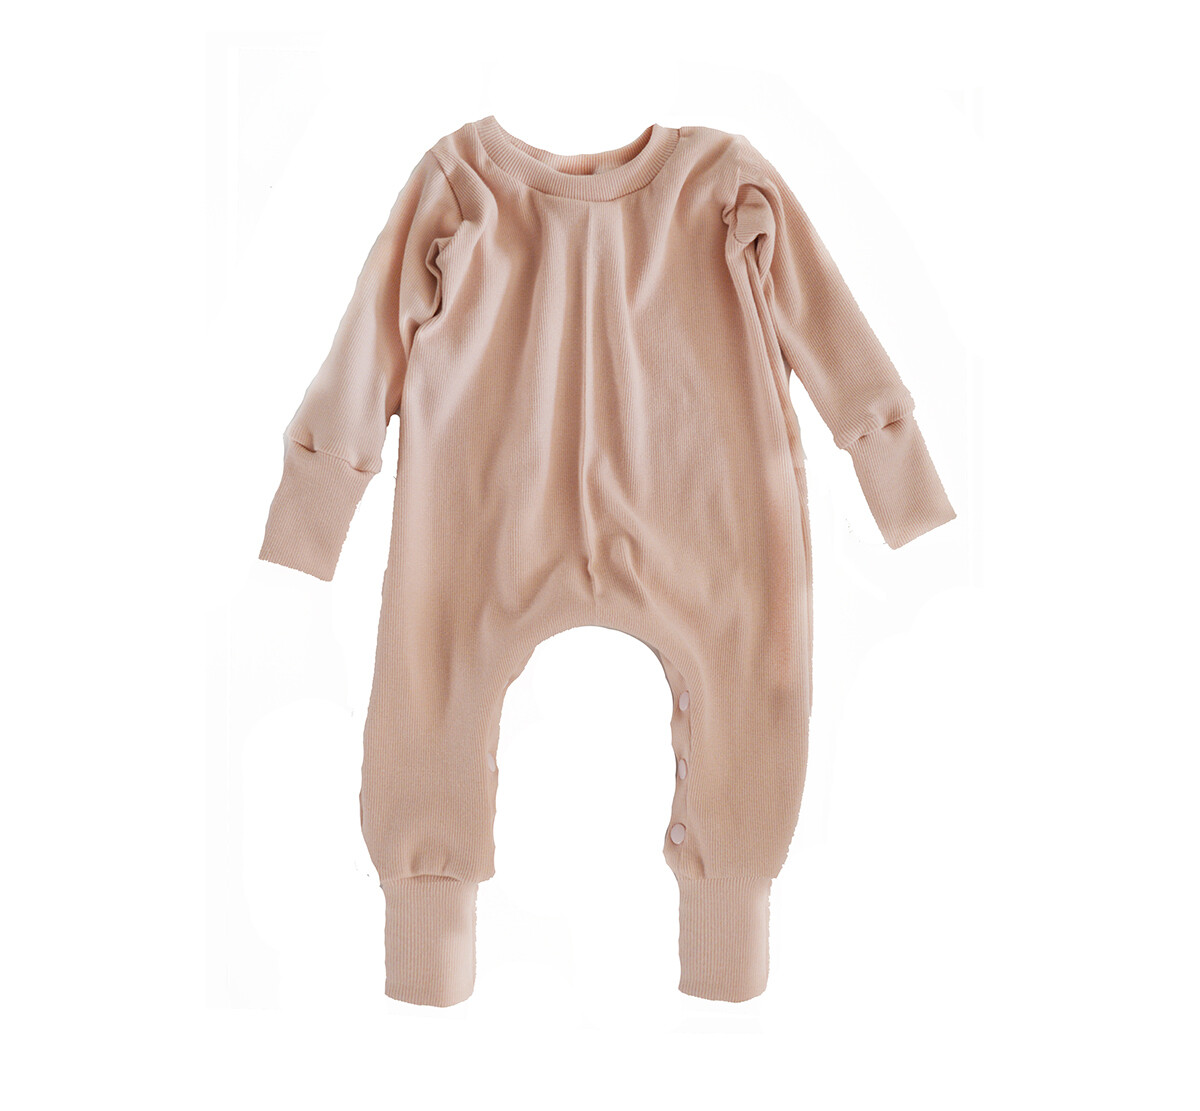 Little Sprout™ Grow with Me Footless Ribbed Knit Sleeper | Blush